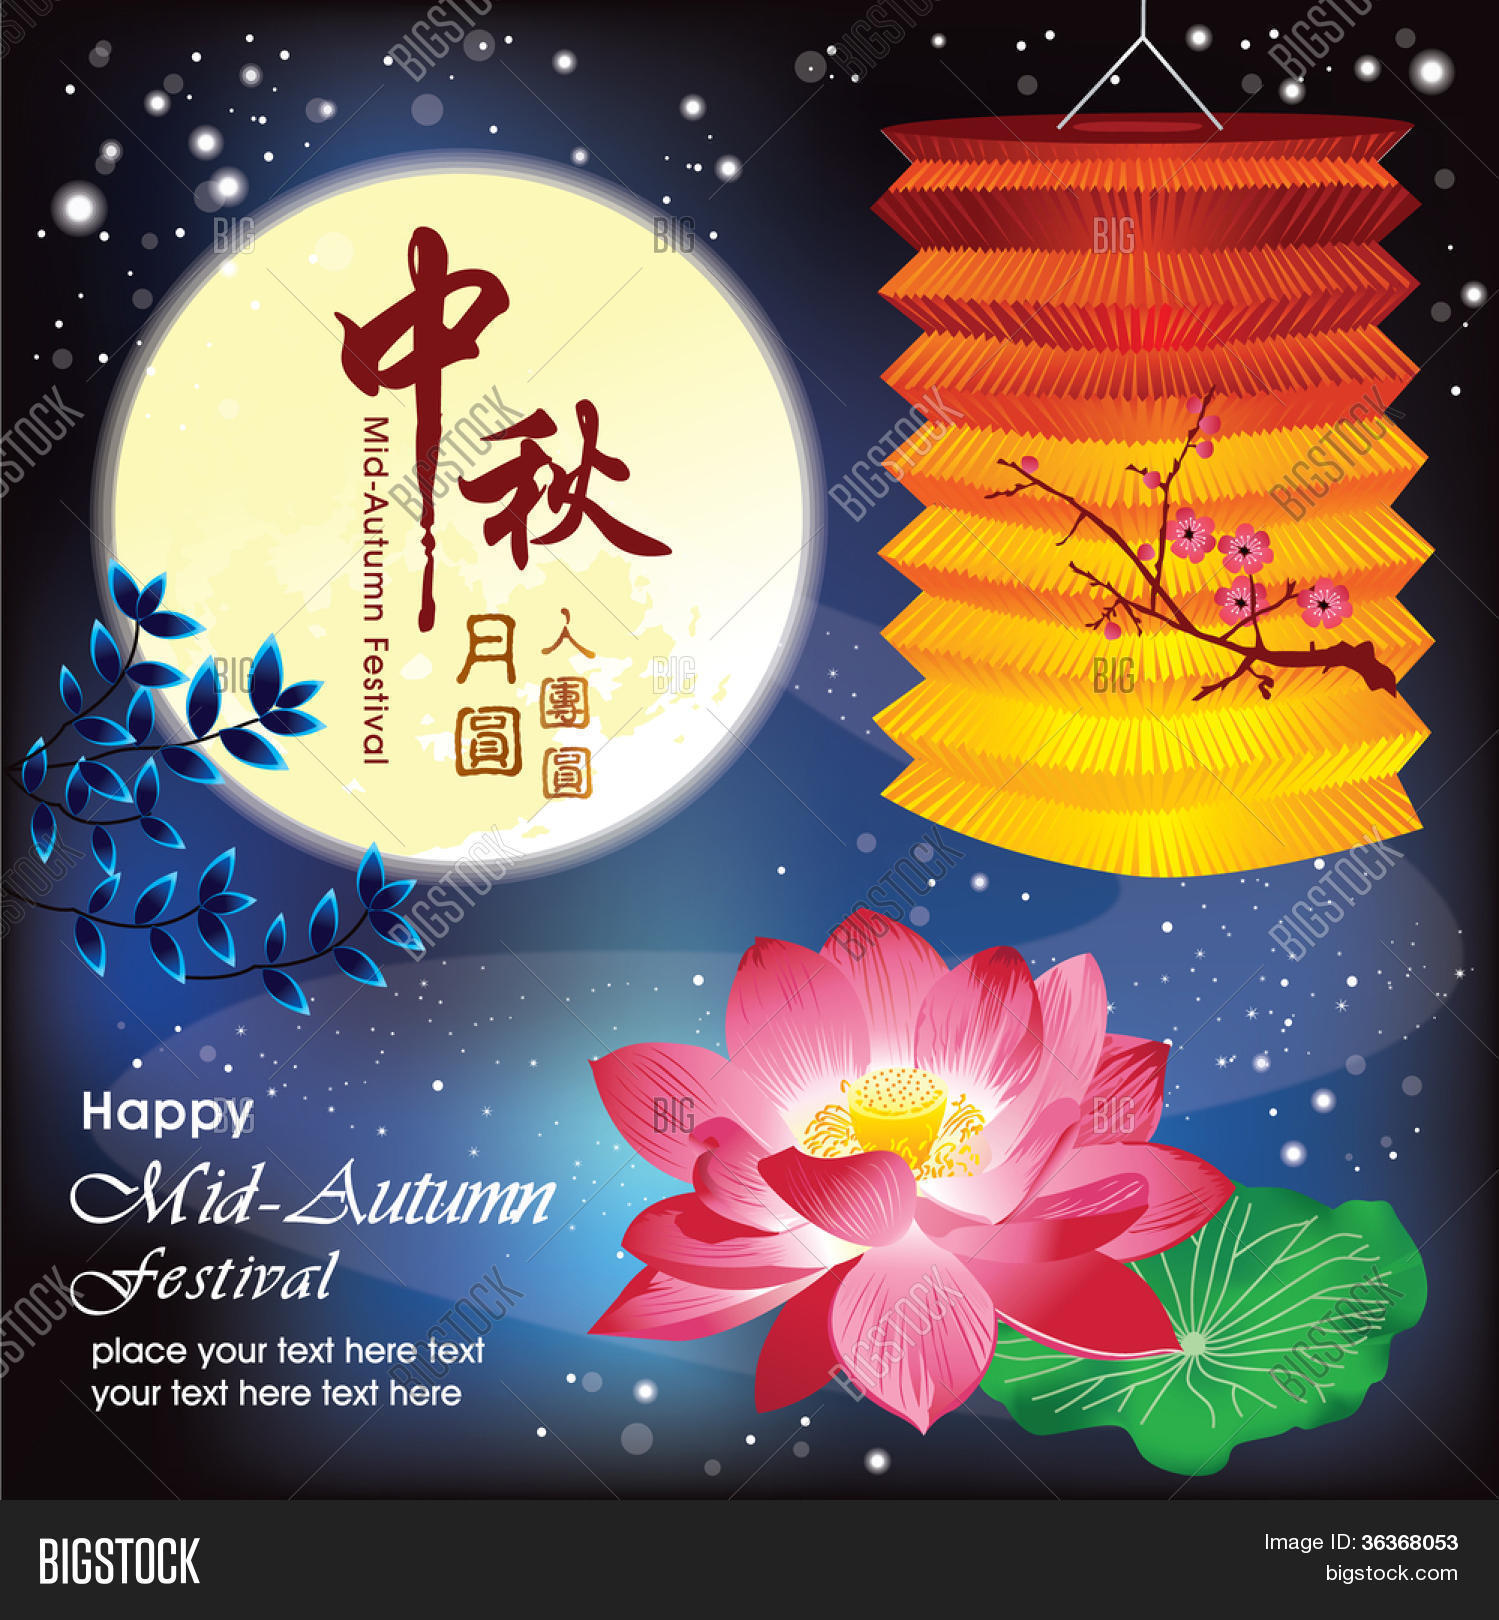 Mid Autumn Festival Vector Photo Free Trial Bigstock